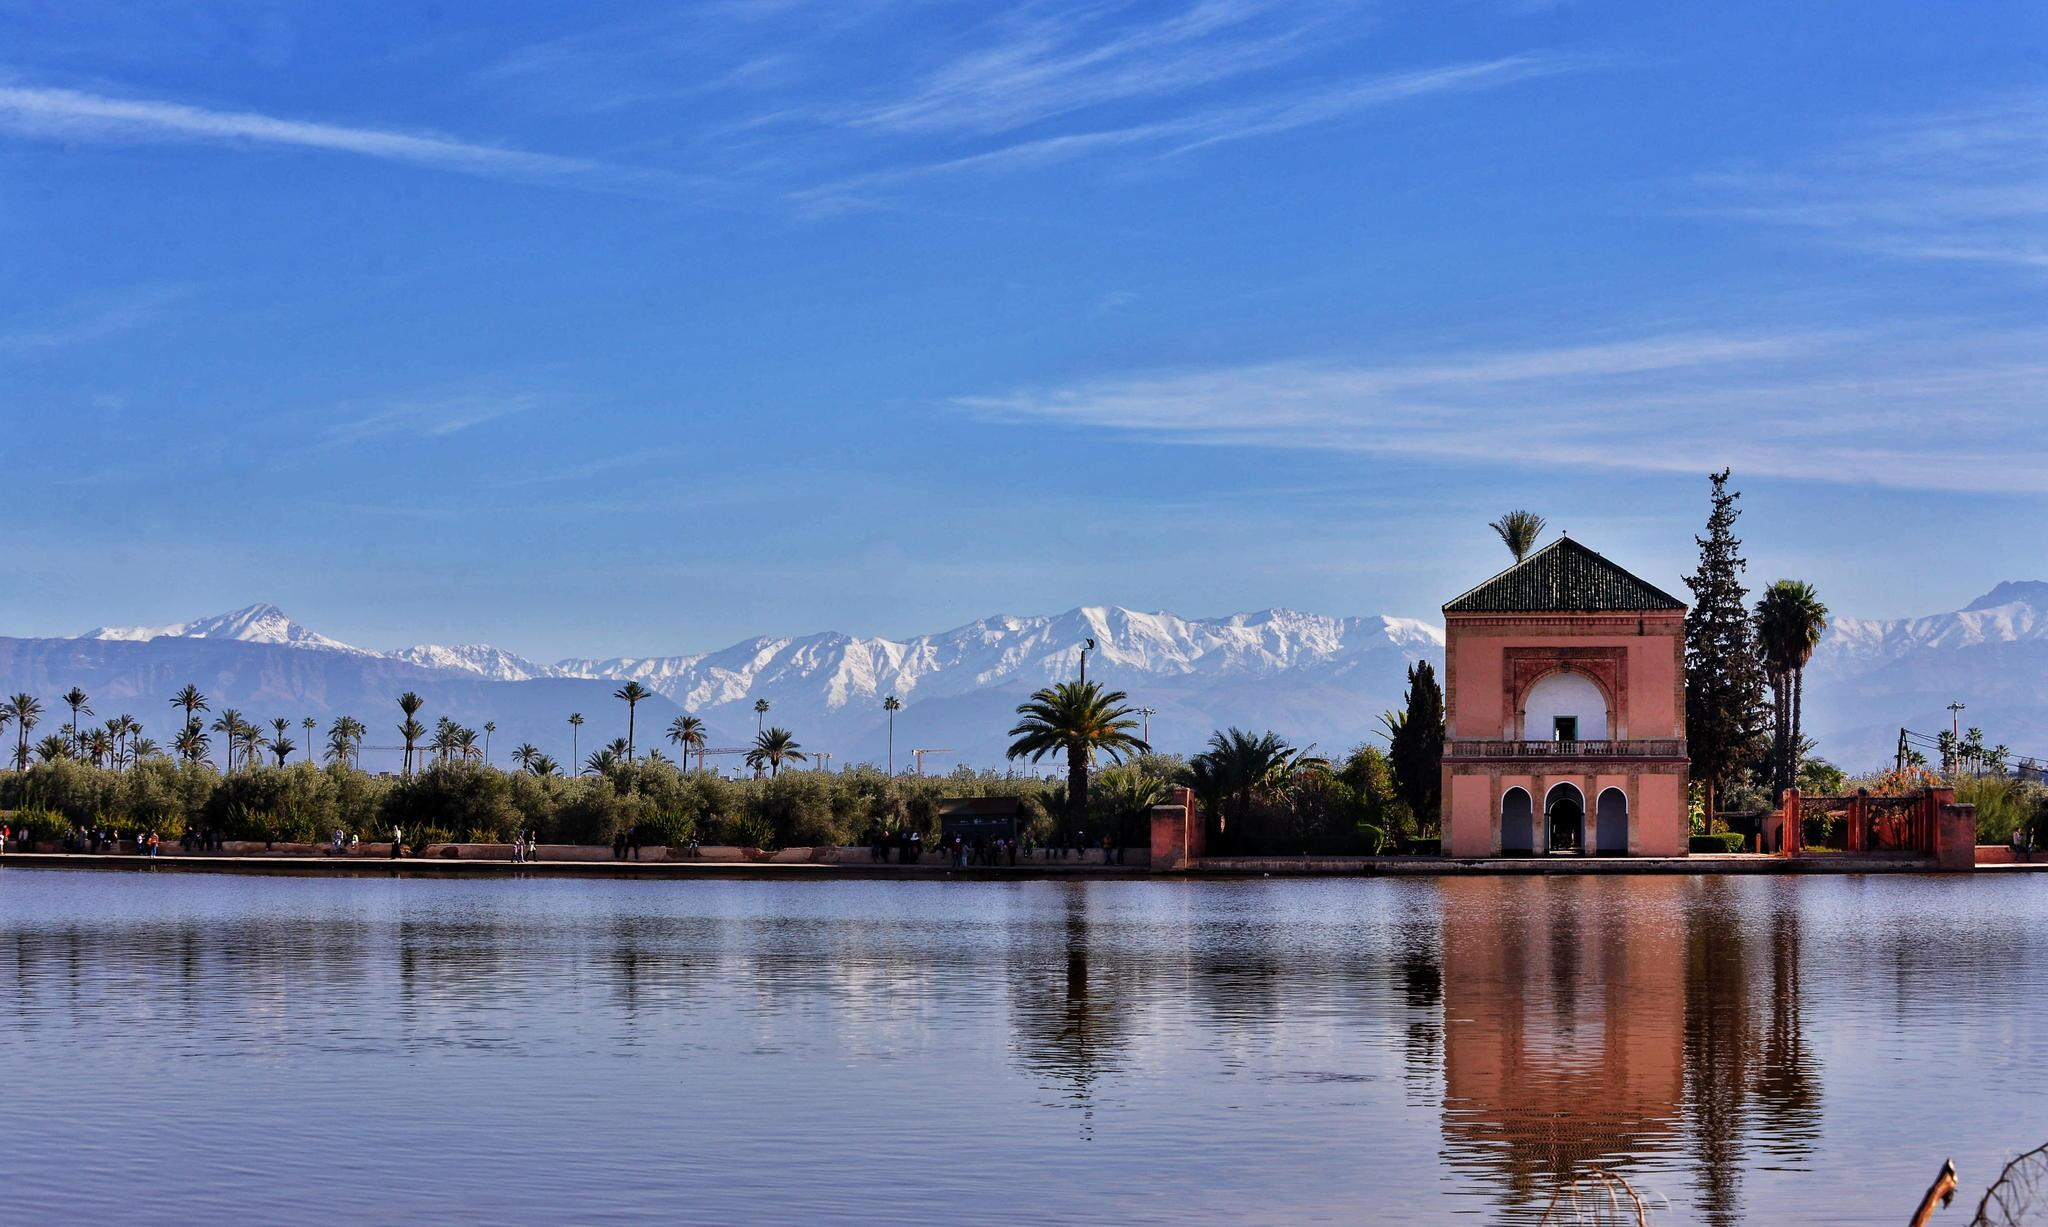 menara-marrakech-circuits-brt-1492699636